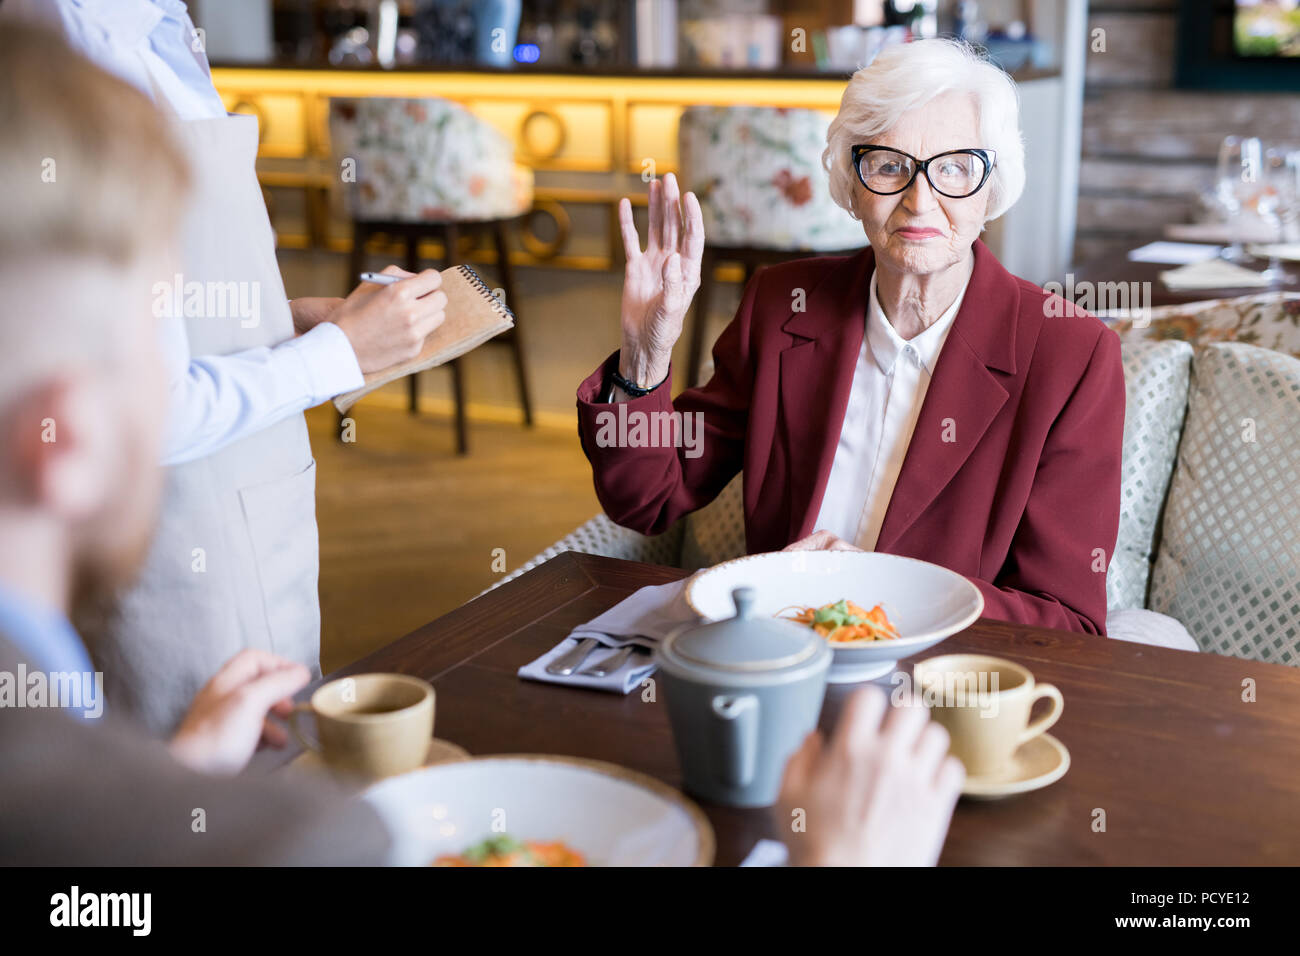 Family dinner at cafe - Stock Image